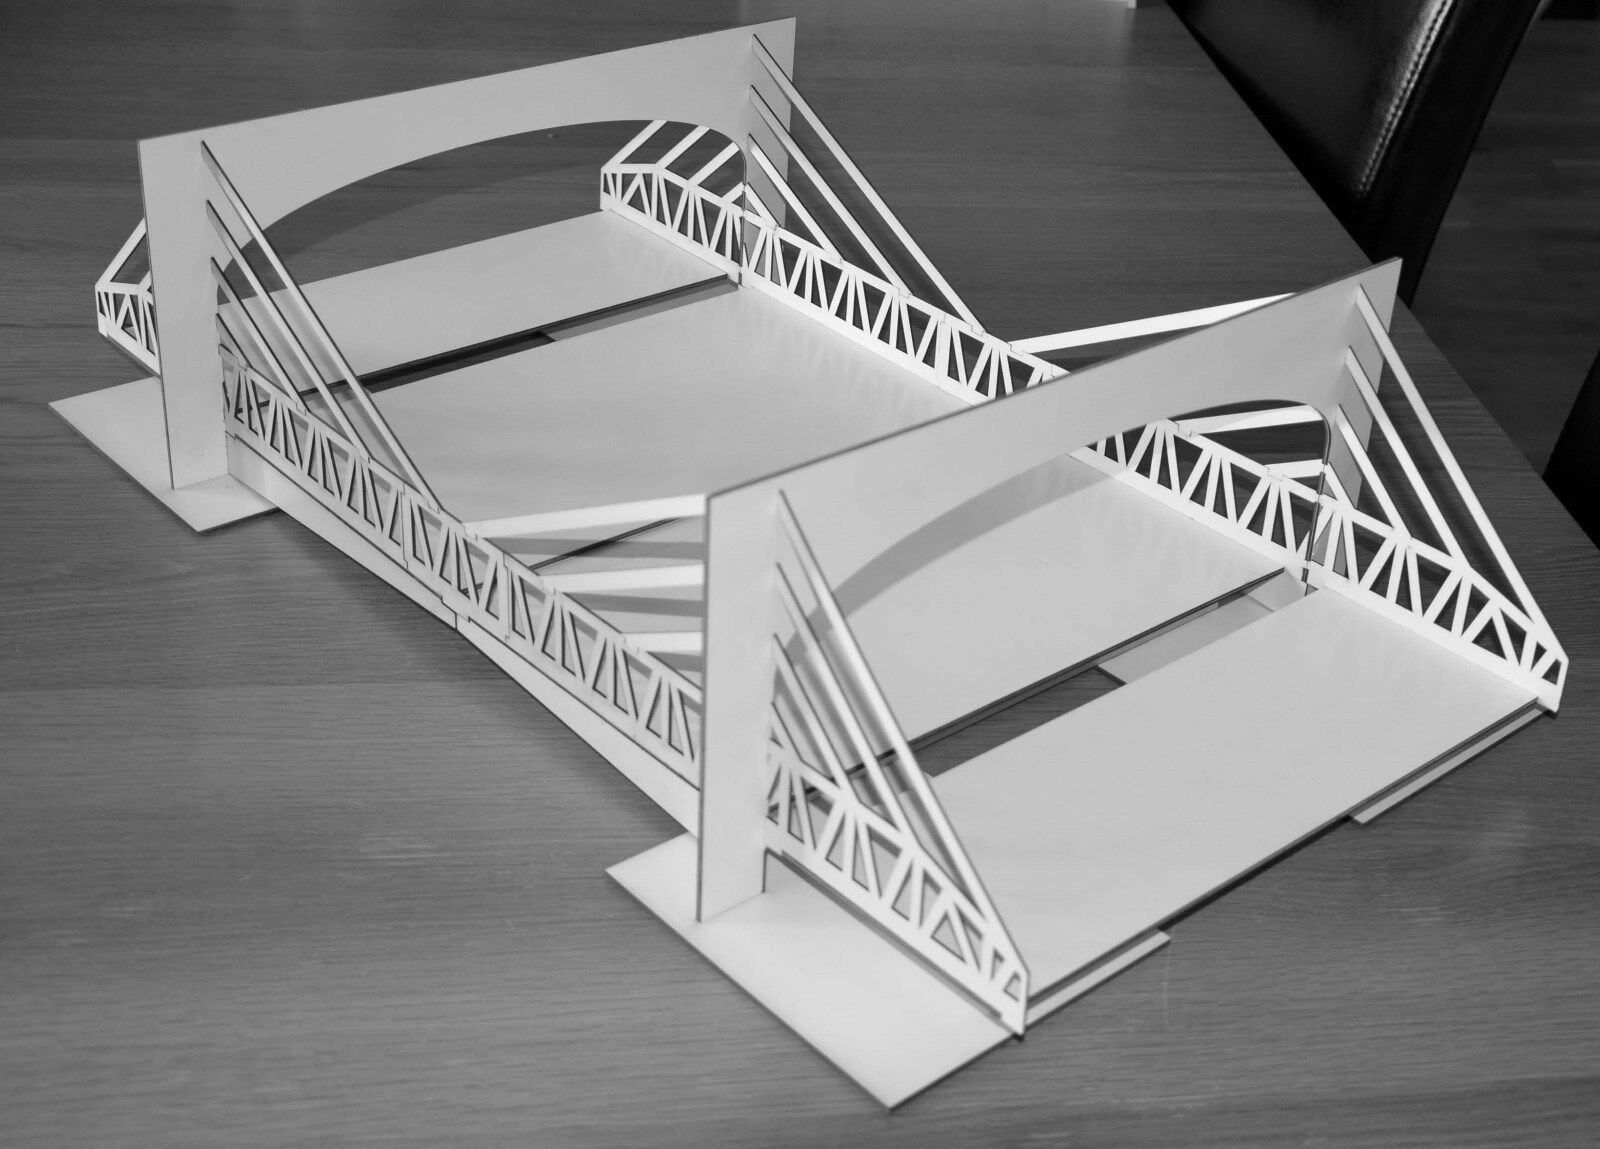 1 32 Scale 4-Lane Suspension Bridge Kit - for Scalextric Other Static Layouts